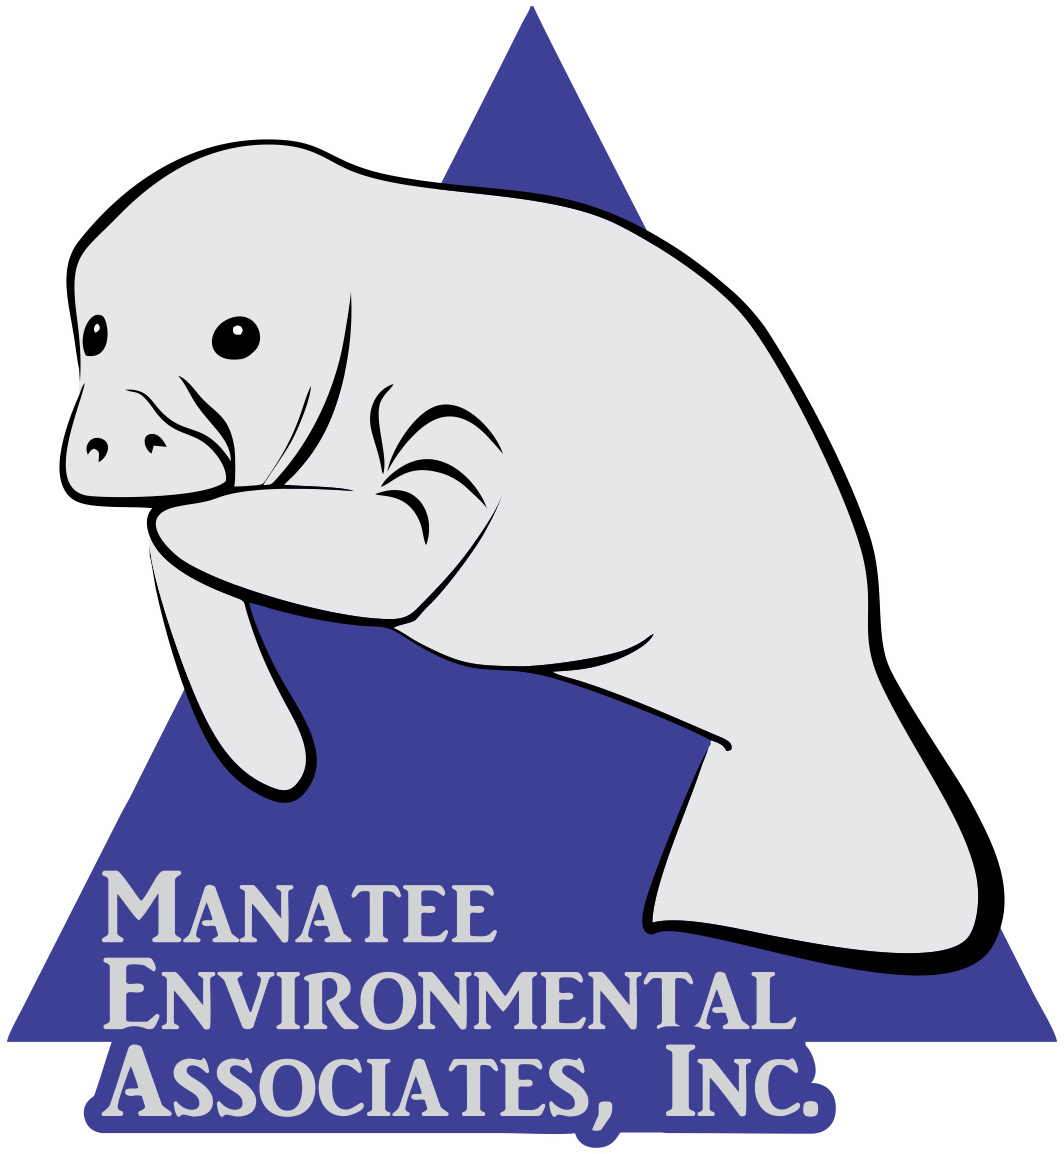 banner download Manatee clipart. Purple free on dumielauxepices